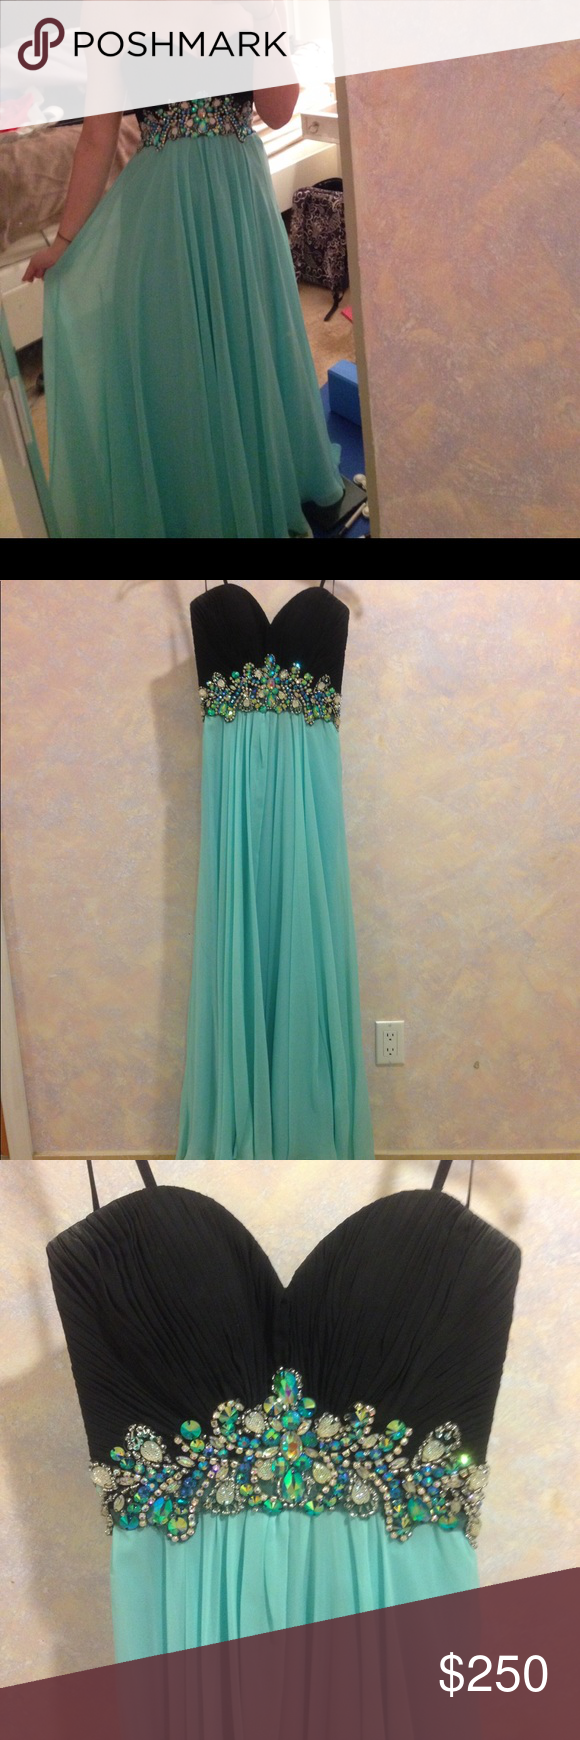 Perfect condition prom dress size blueblack strapless prom